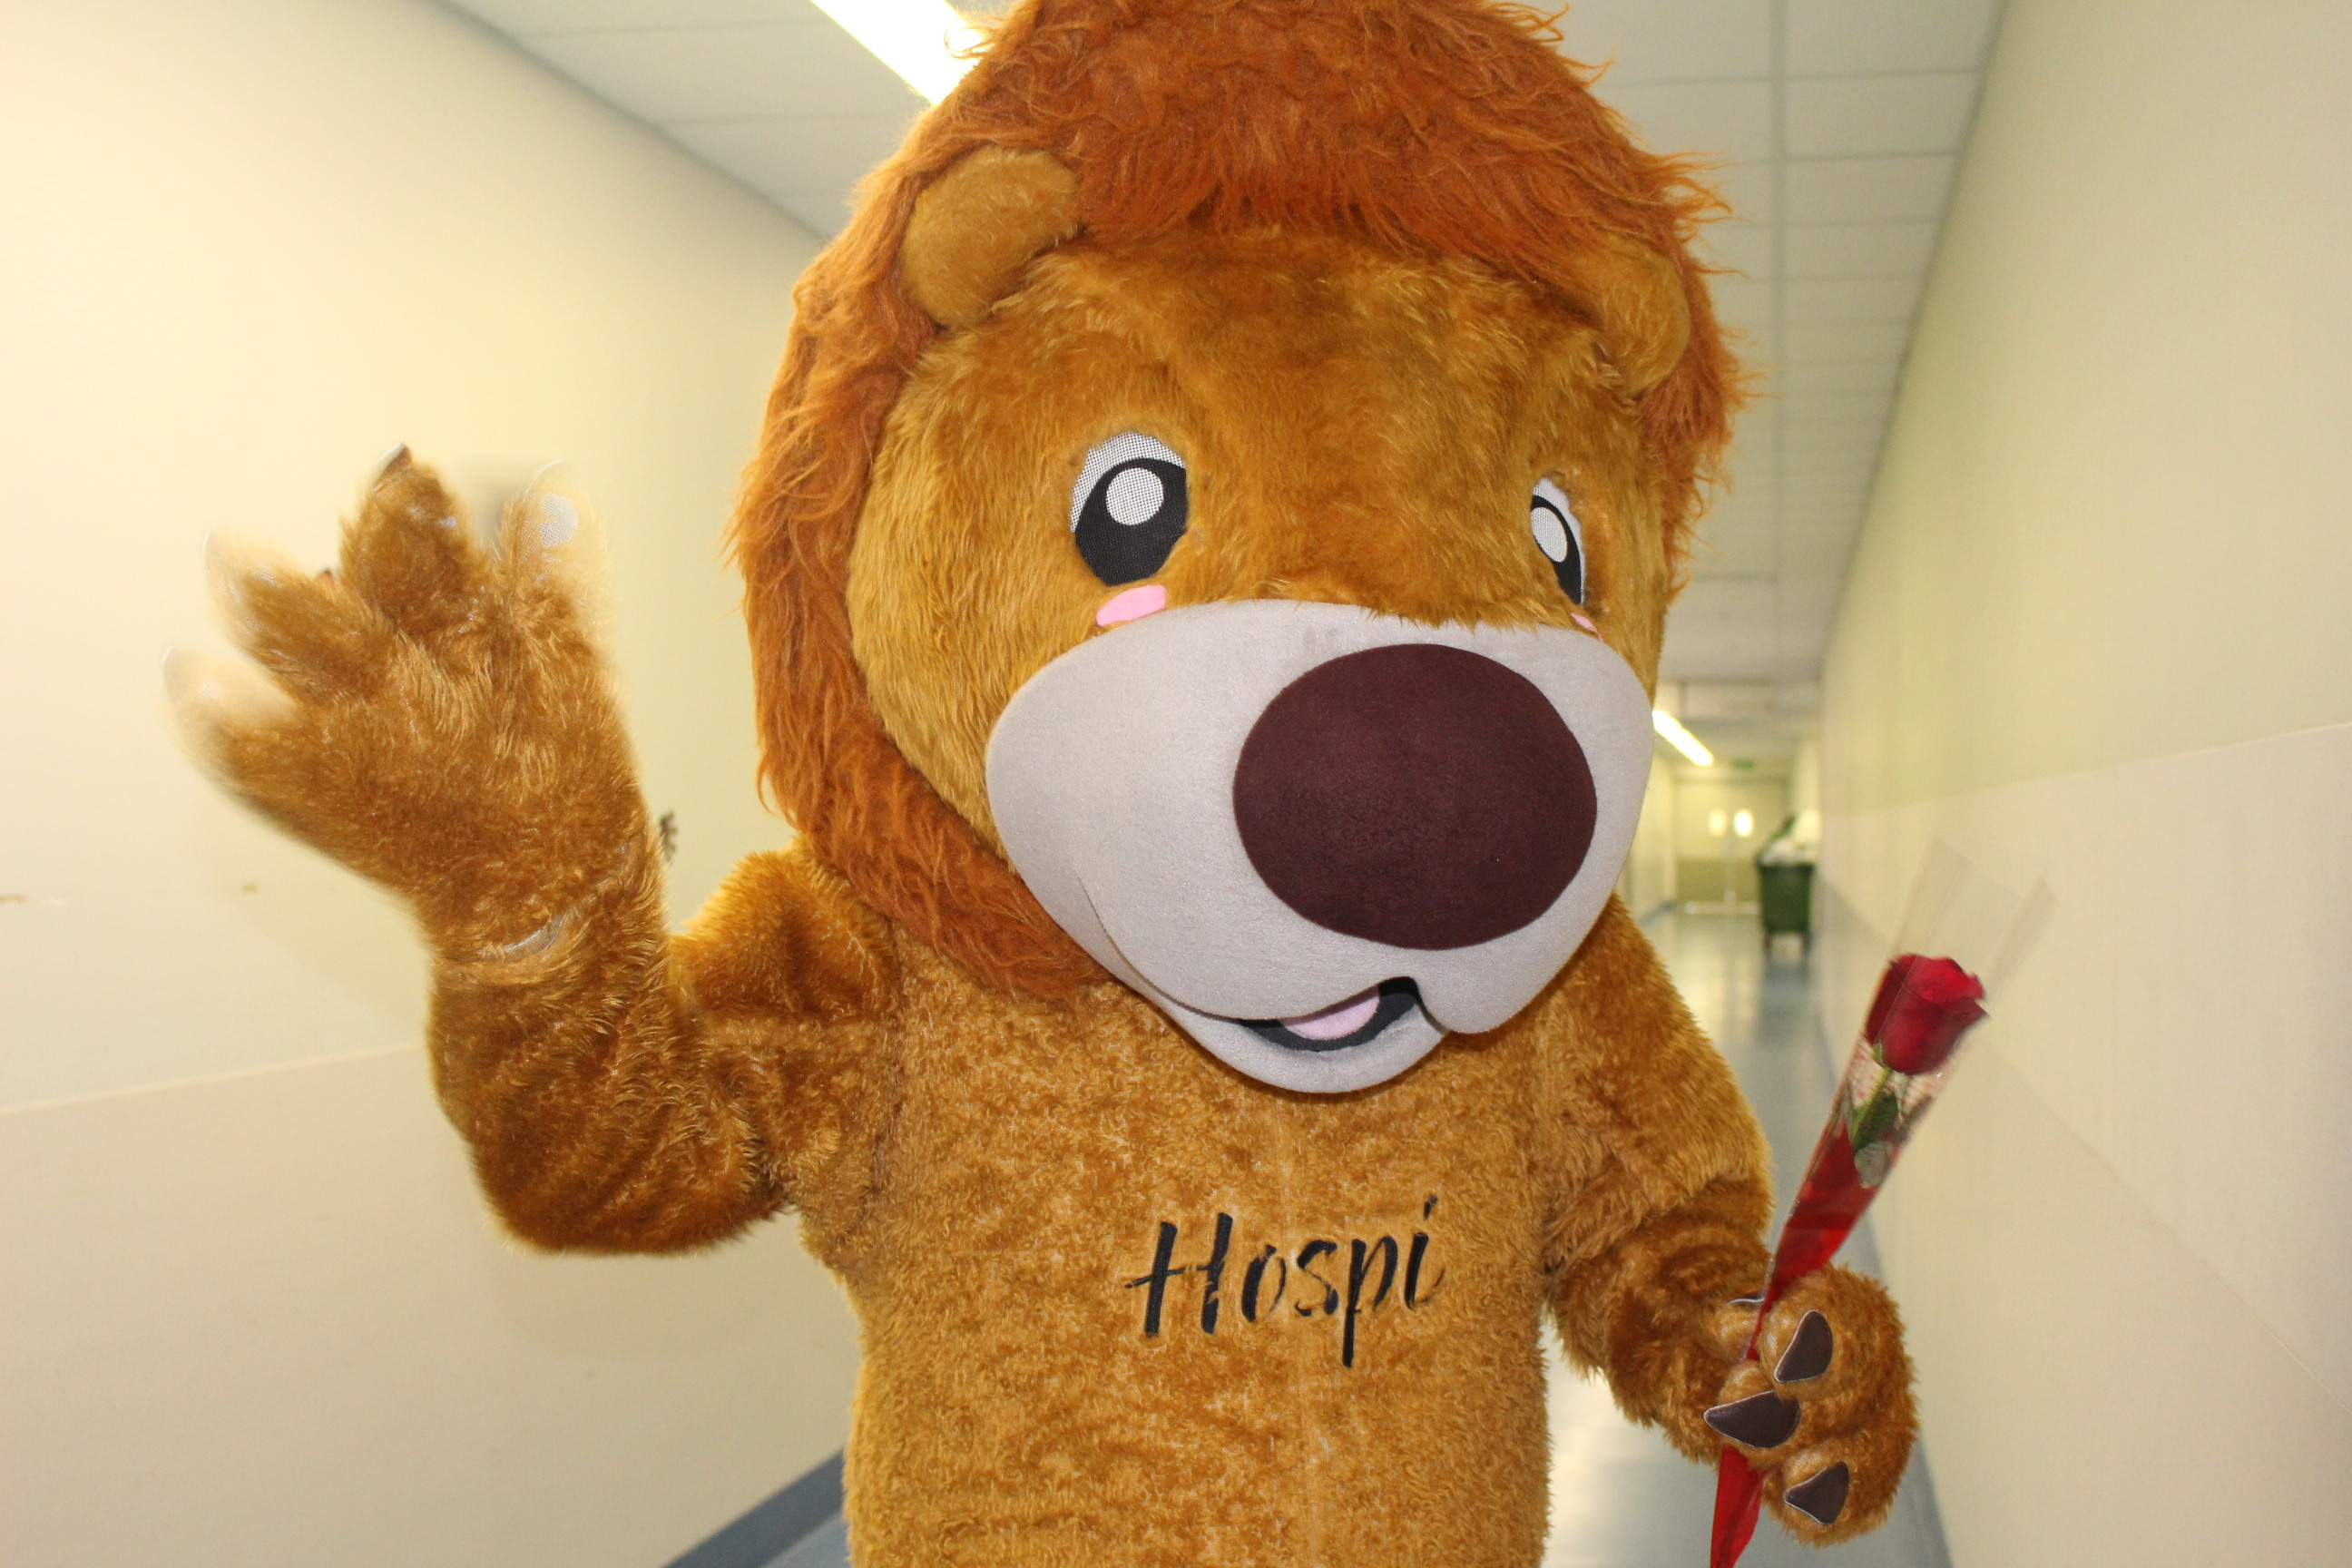 Children's Hospital mascot Hospi delivers roses on Valentines Day